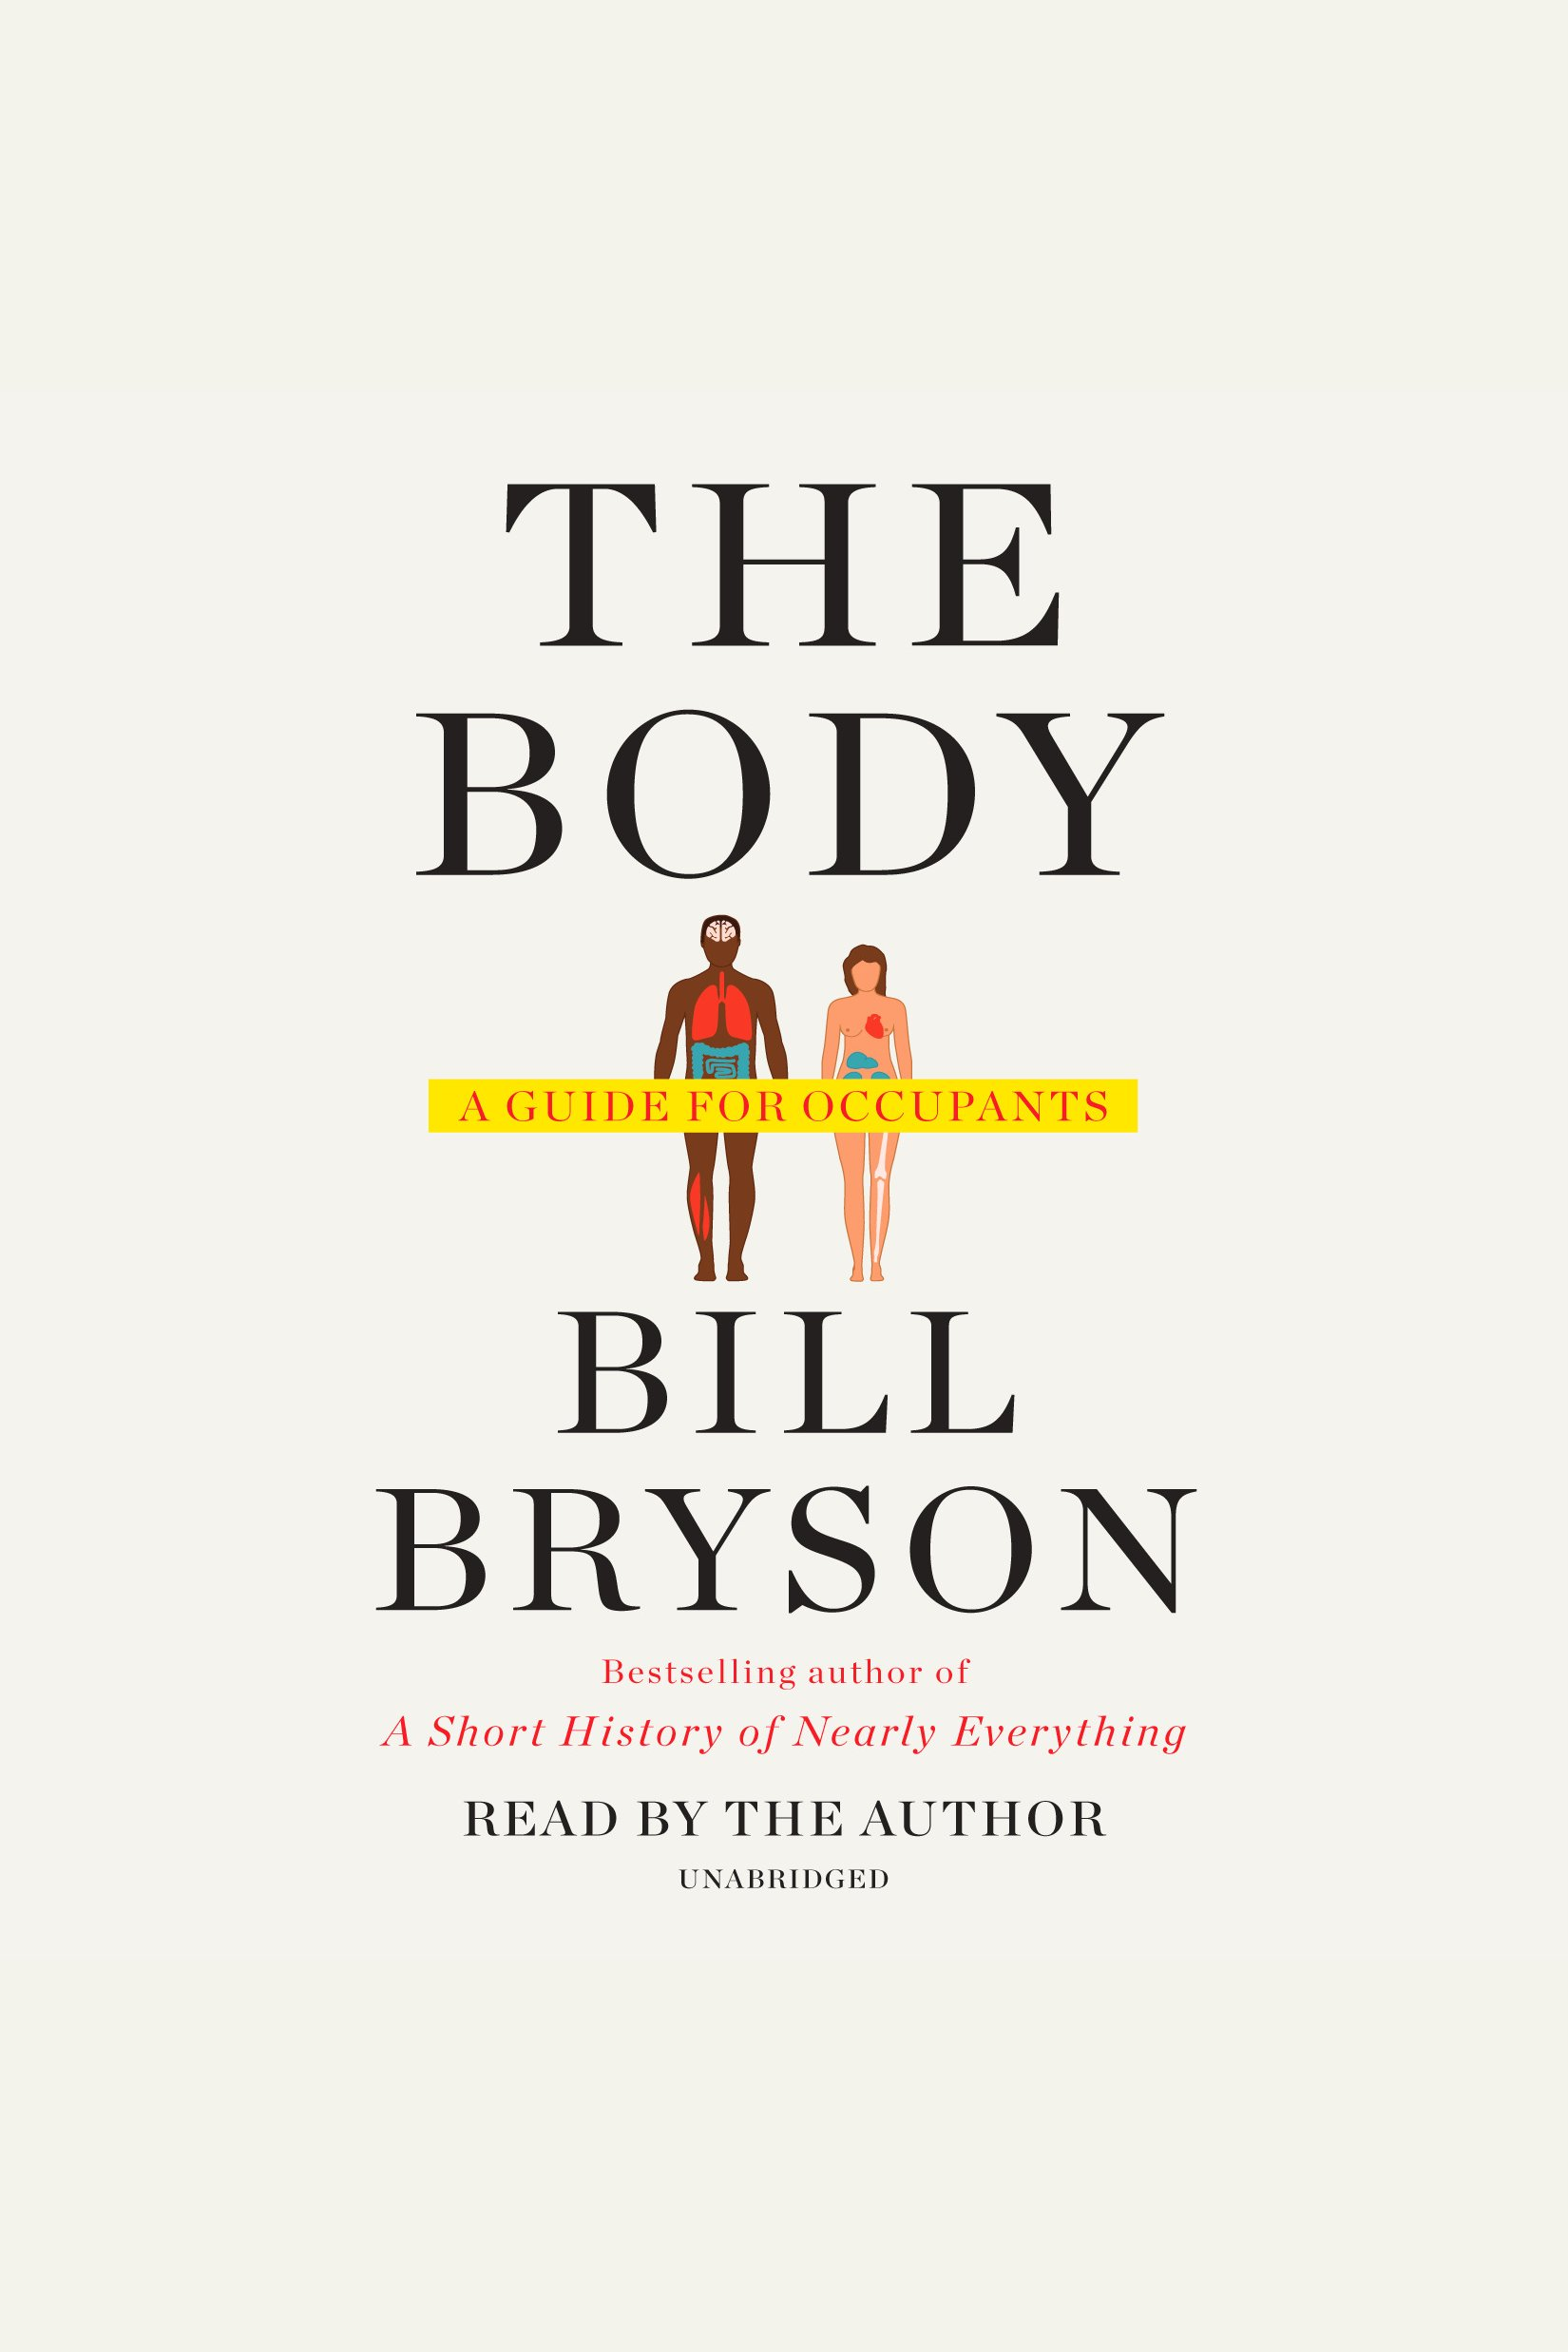 Body, The A Guide for Occupants